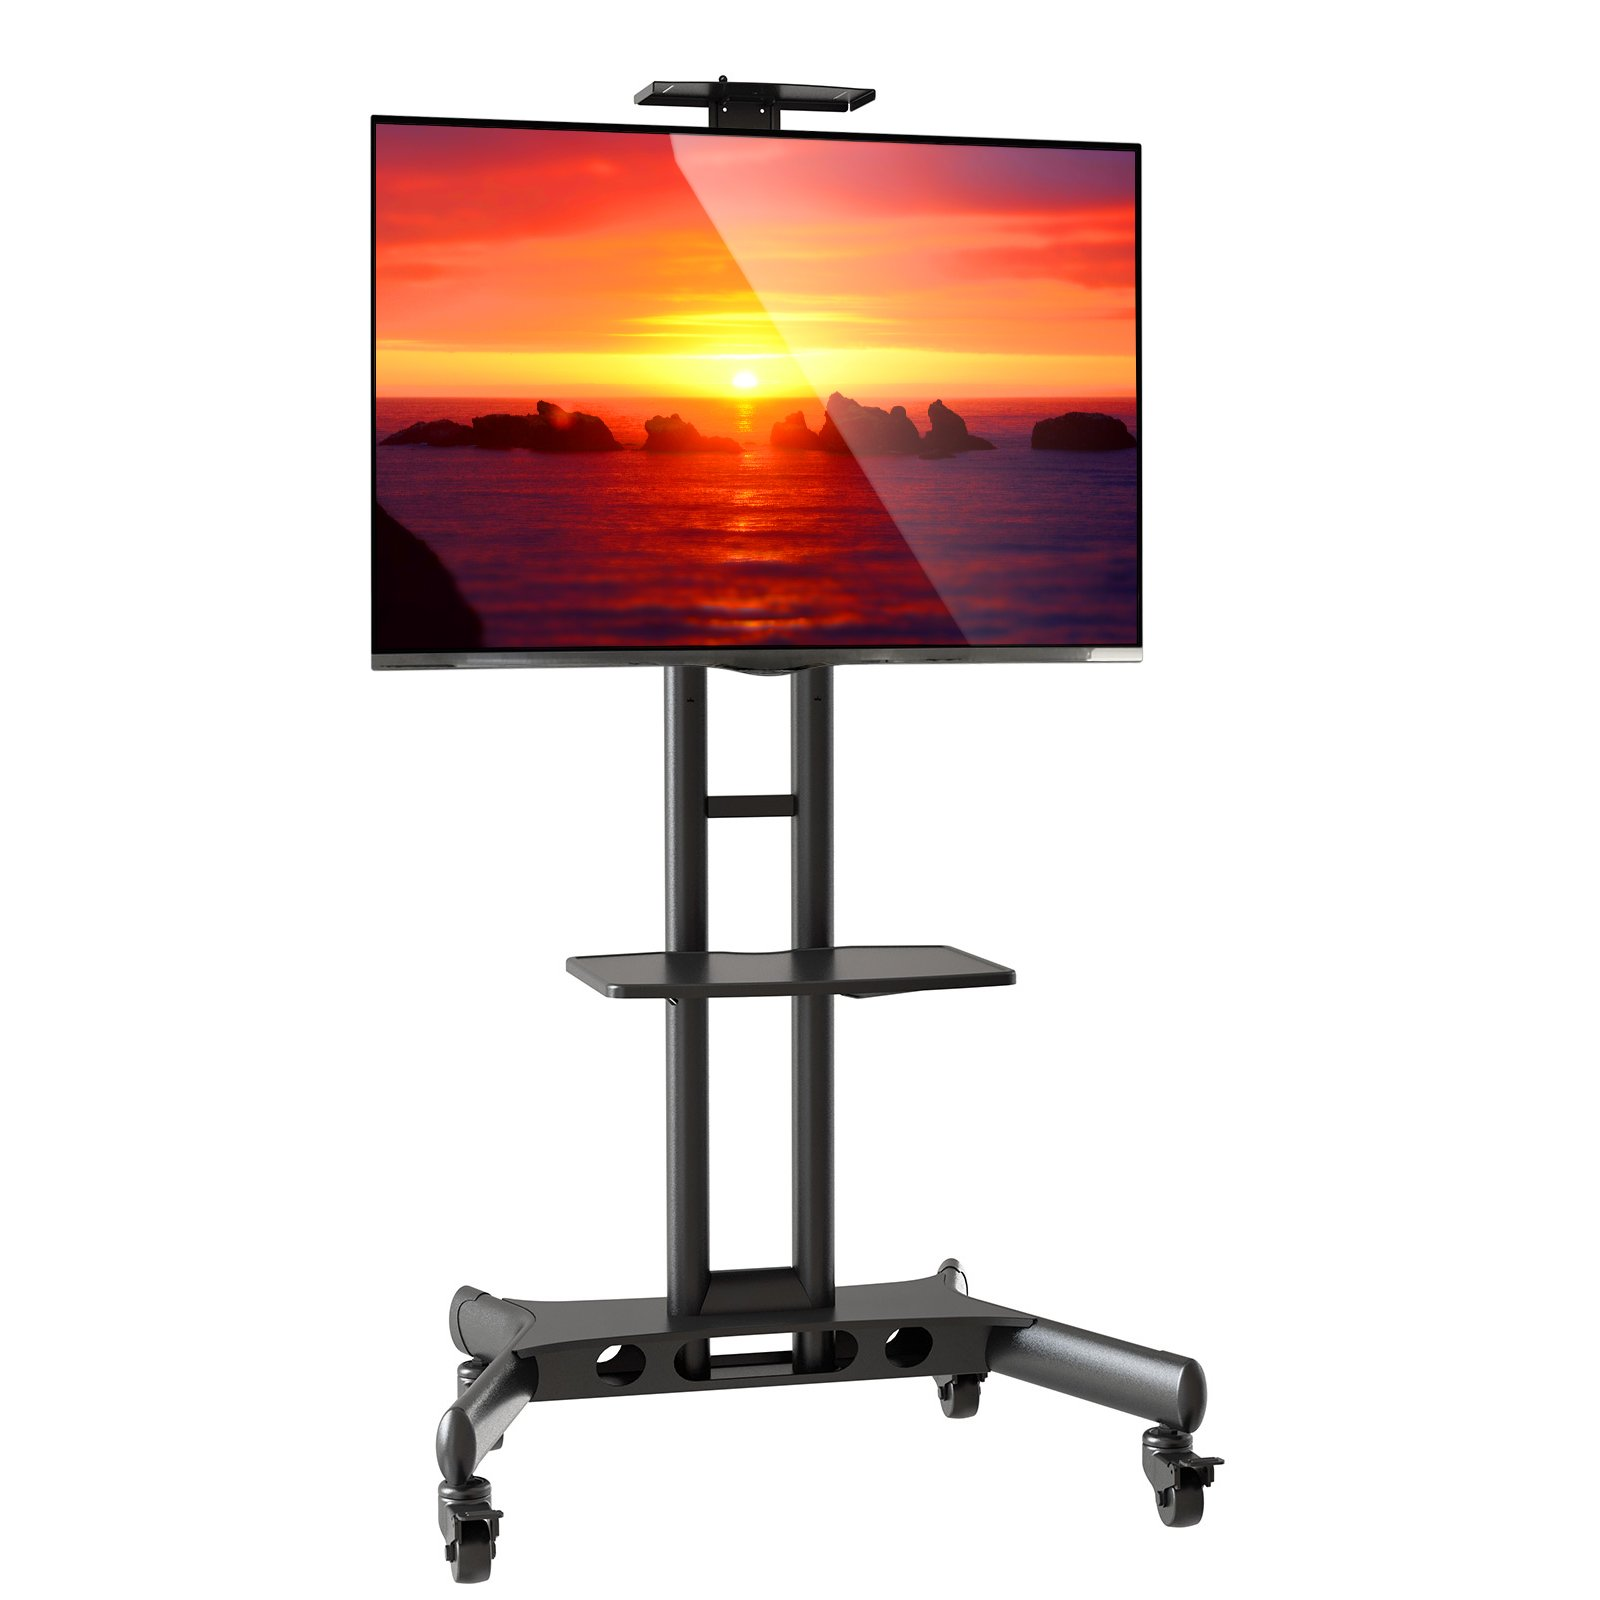 Mount Factory Rolling TV Cart Mobile TV Stand for 40-65 inch Flat Screen, LED, LCD, OLED, Plasma, Curved TV's - Universal Mount with Wheels by Mount Factory